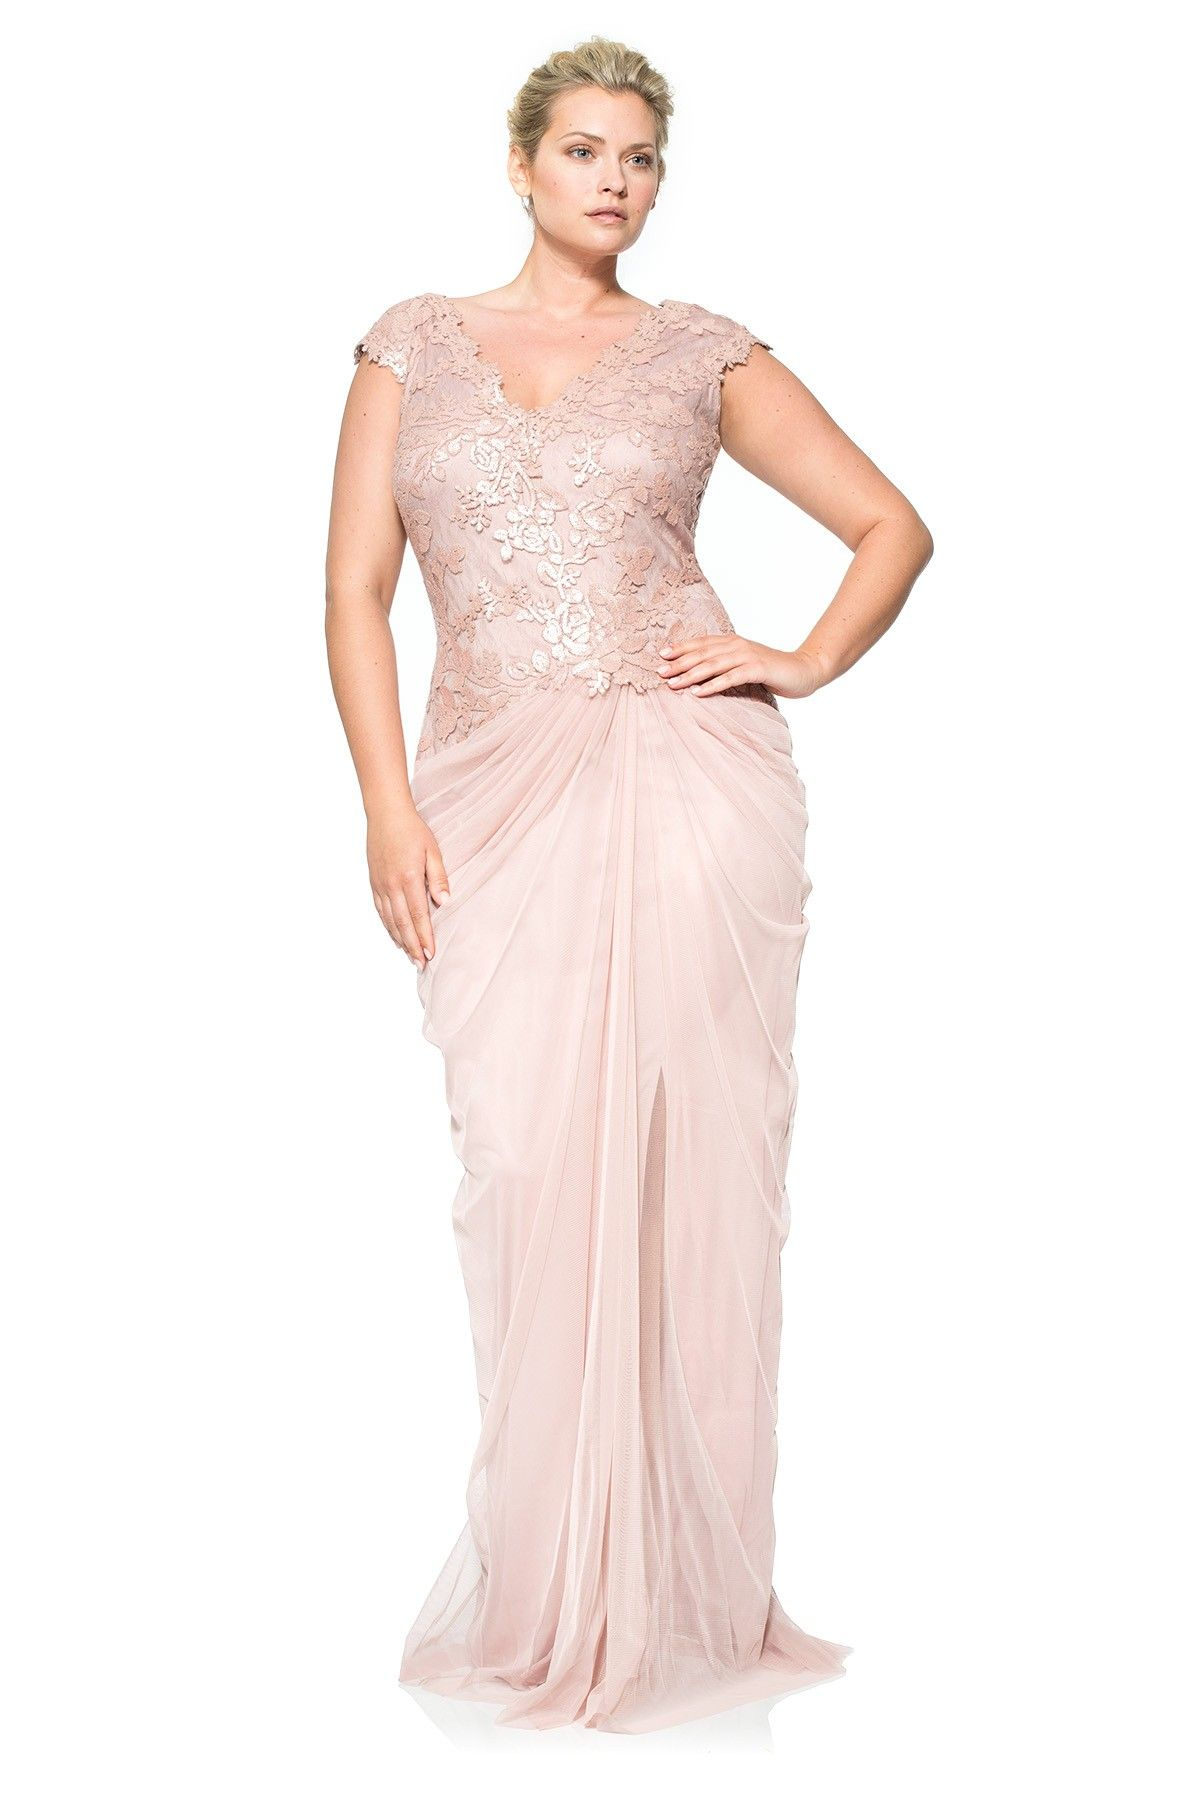 20 Plus-Size Evening Gowns for Your Next Black Tie Event | Lovely ...